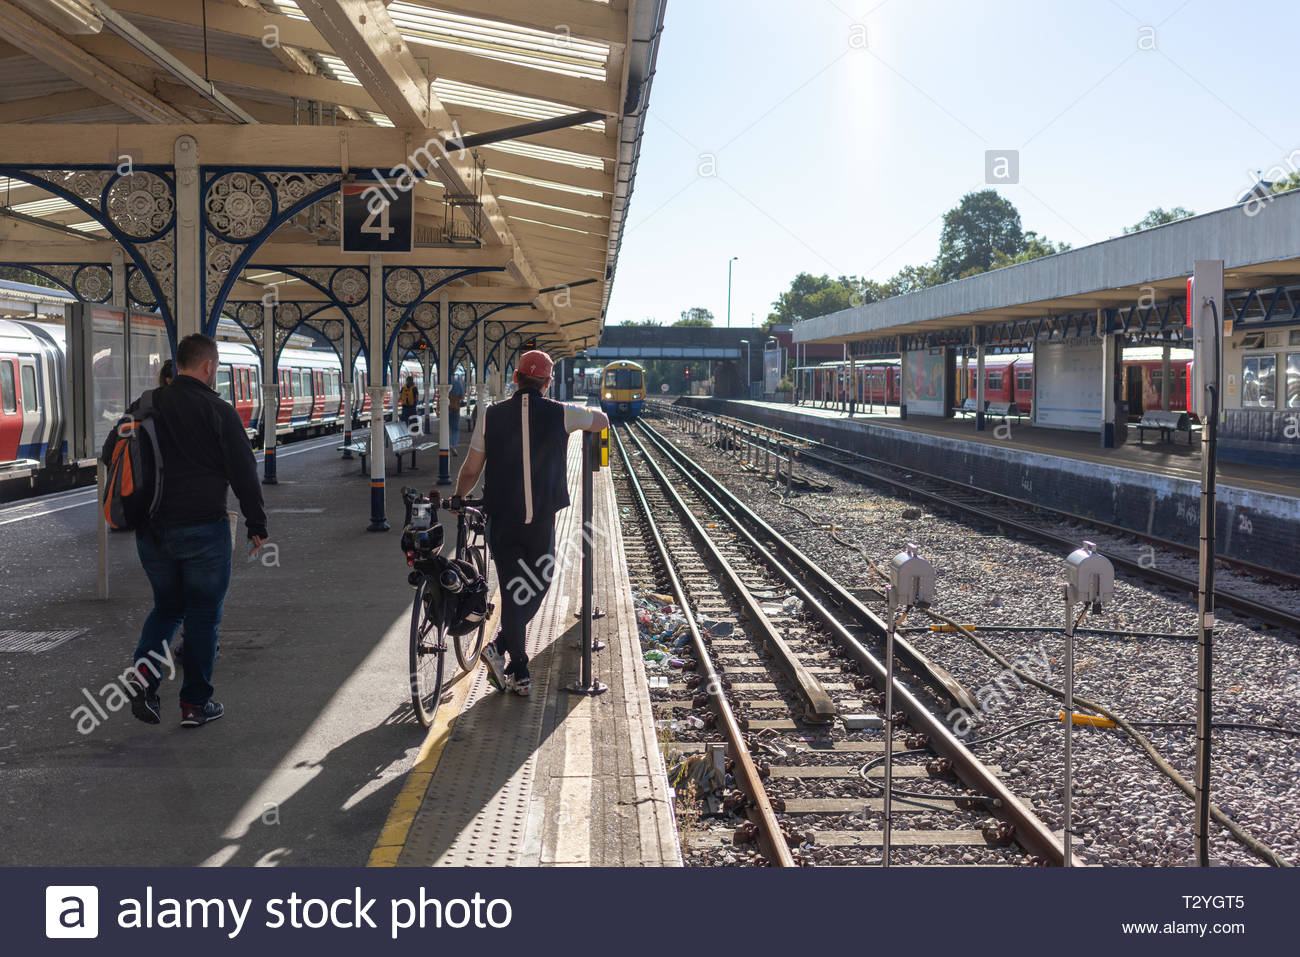 Passengers waiting for an incoming train at Richmond Station - Stock Image